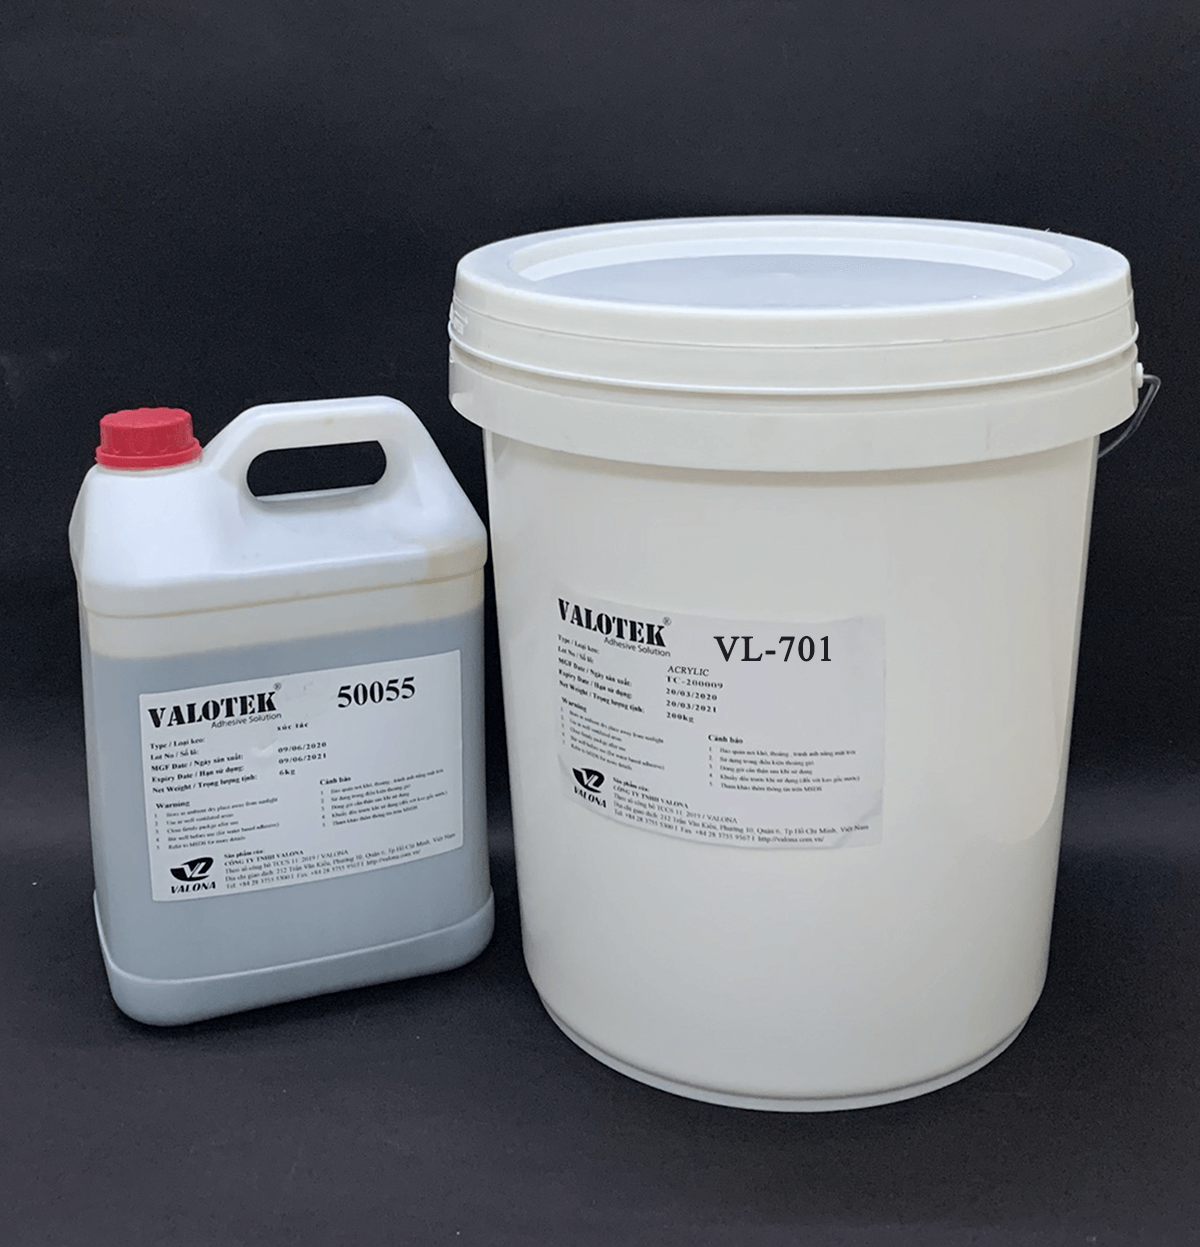 WATER-BASED GLUE 2 COMPONENTS FOR NATURAL WOOD VALOTEK VL-701